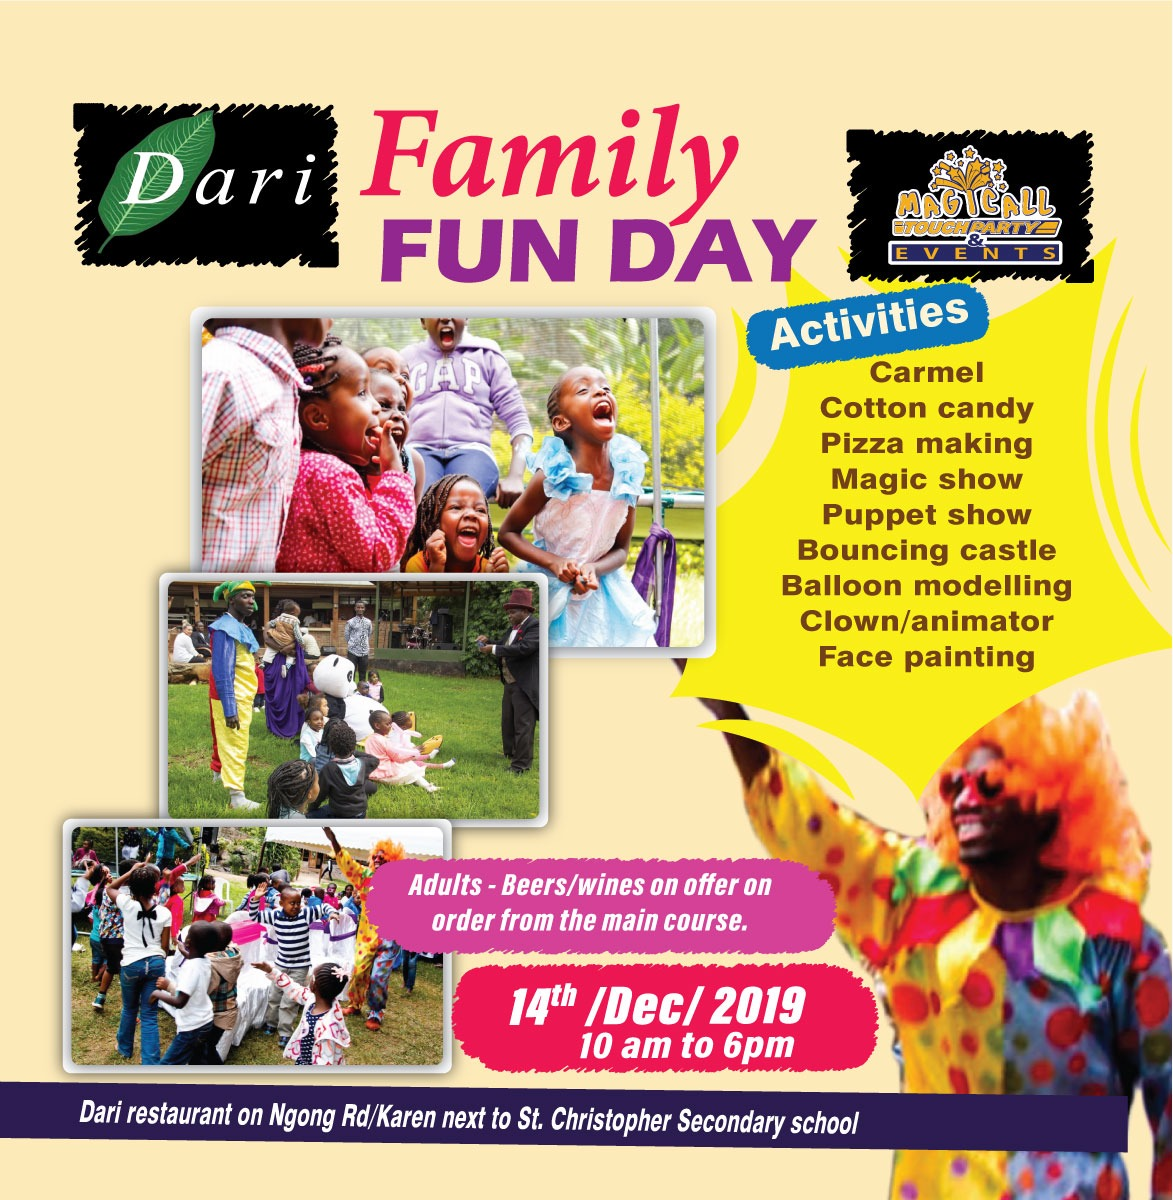 Dari Family Fun Day